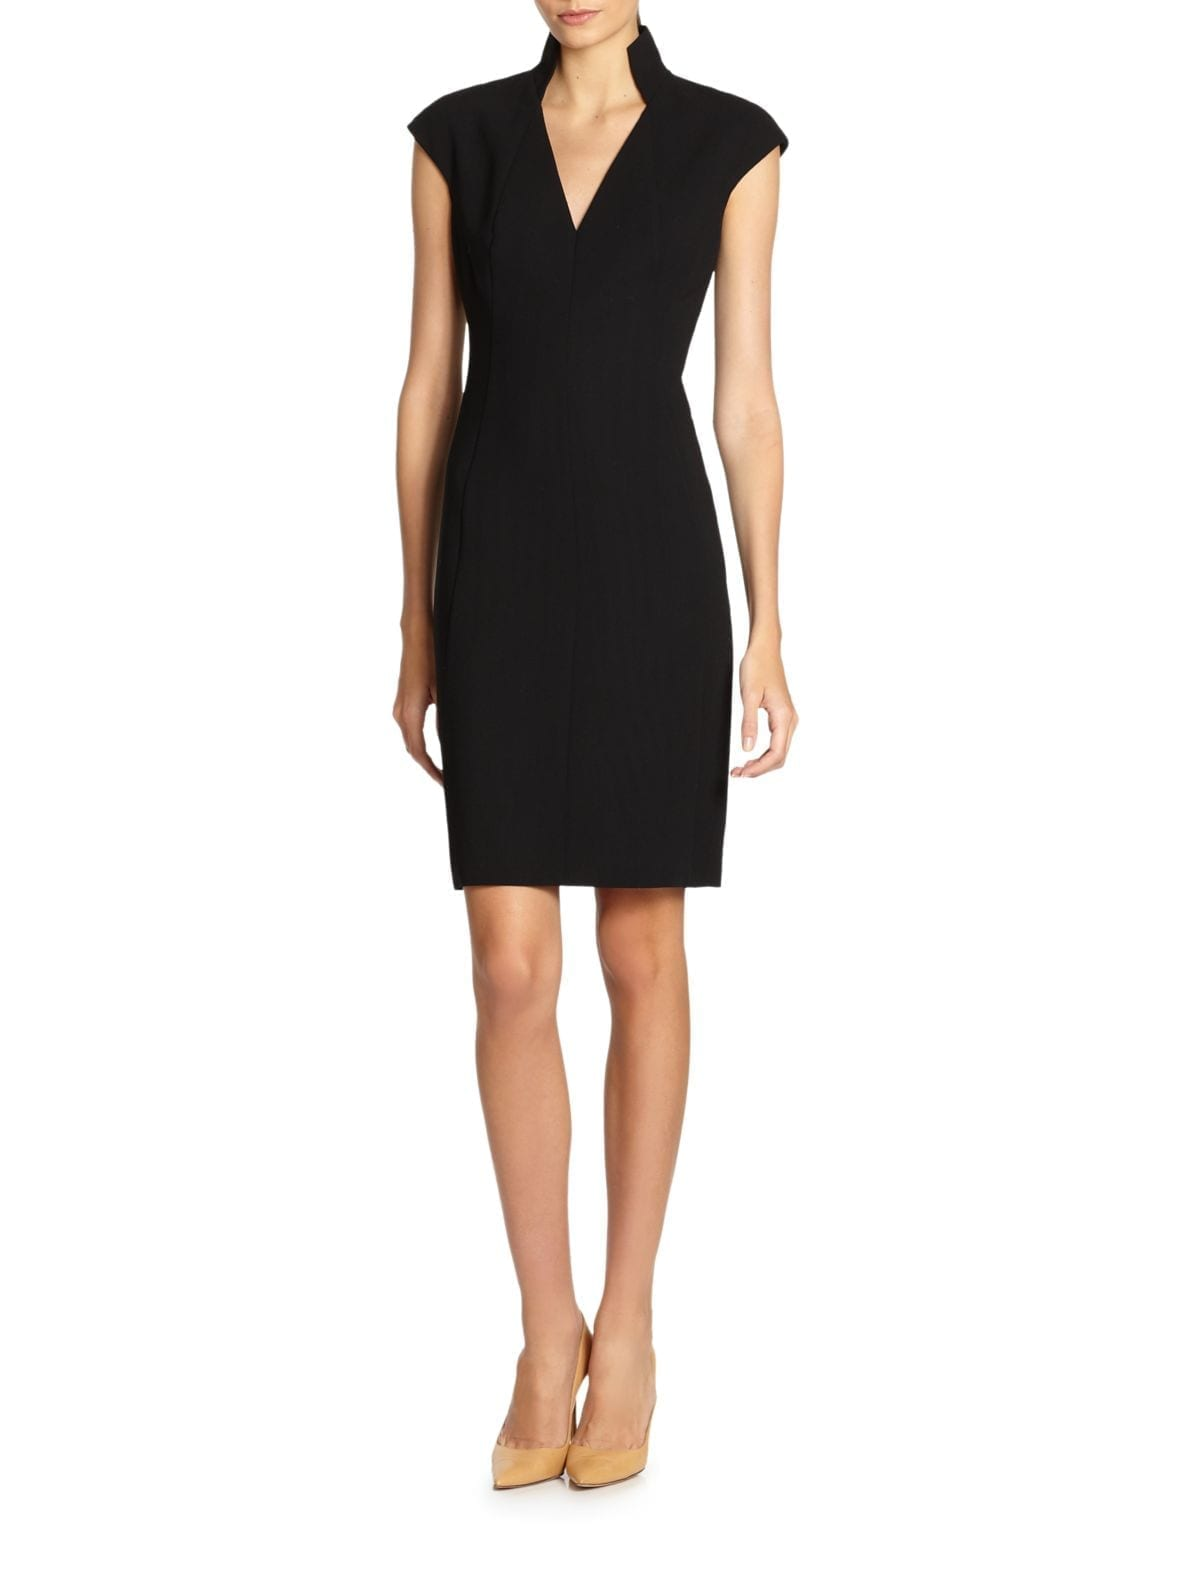 AKRIS Architectural Collection Double Face Black Dress